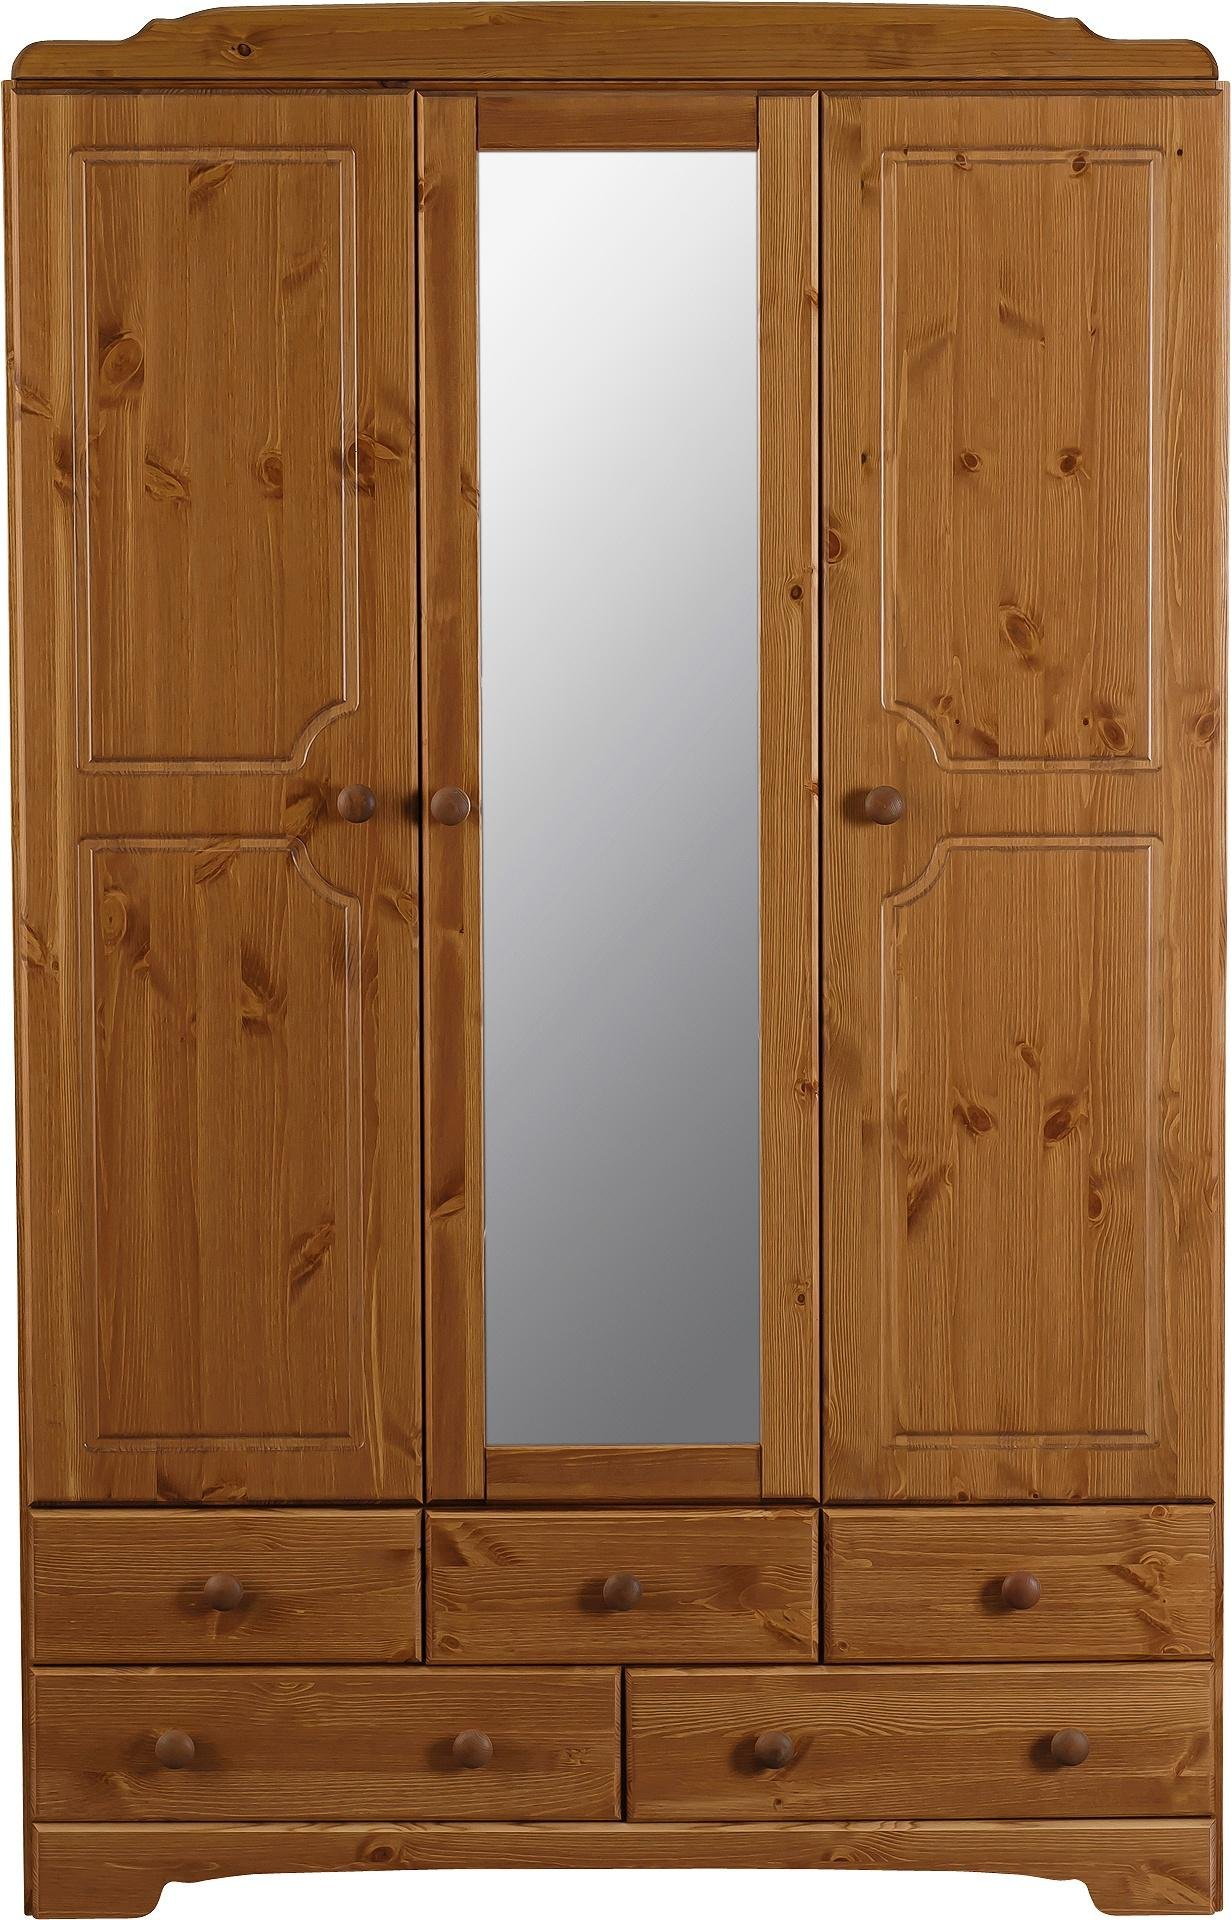 sale on home nordic 3 door 5 drawer mirrored wardrobe. Black Bedroom Furniture Sets. Home Design Ideas